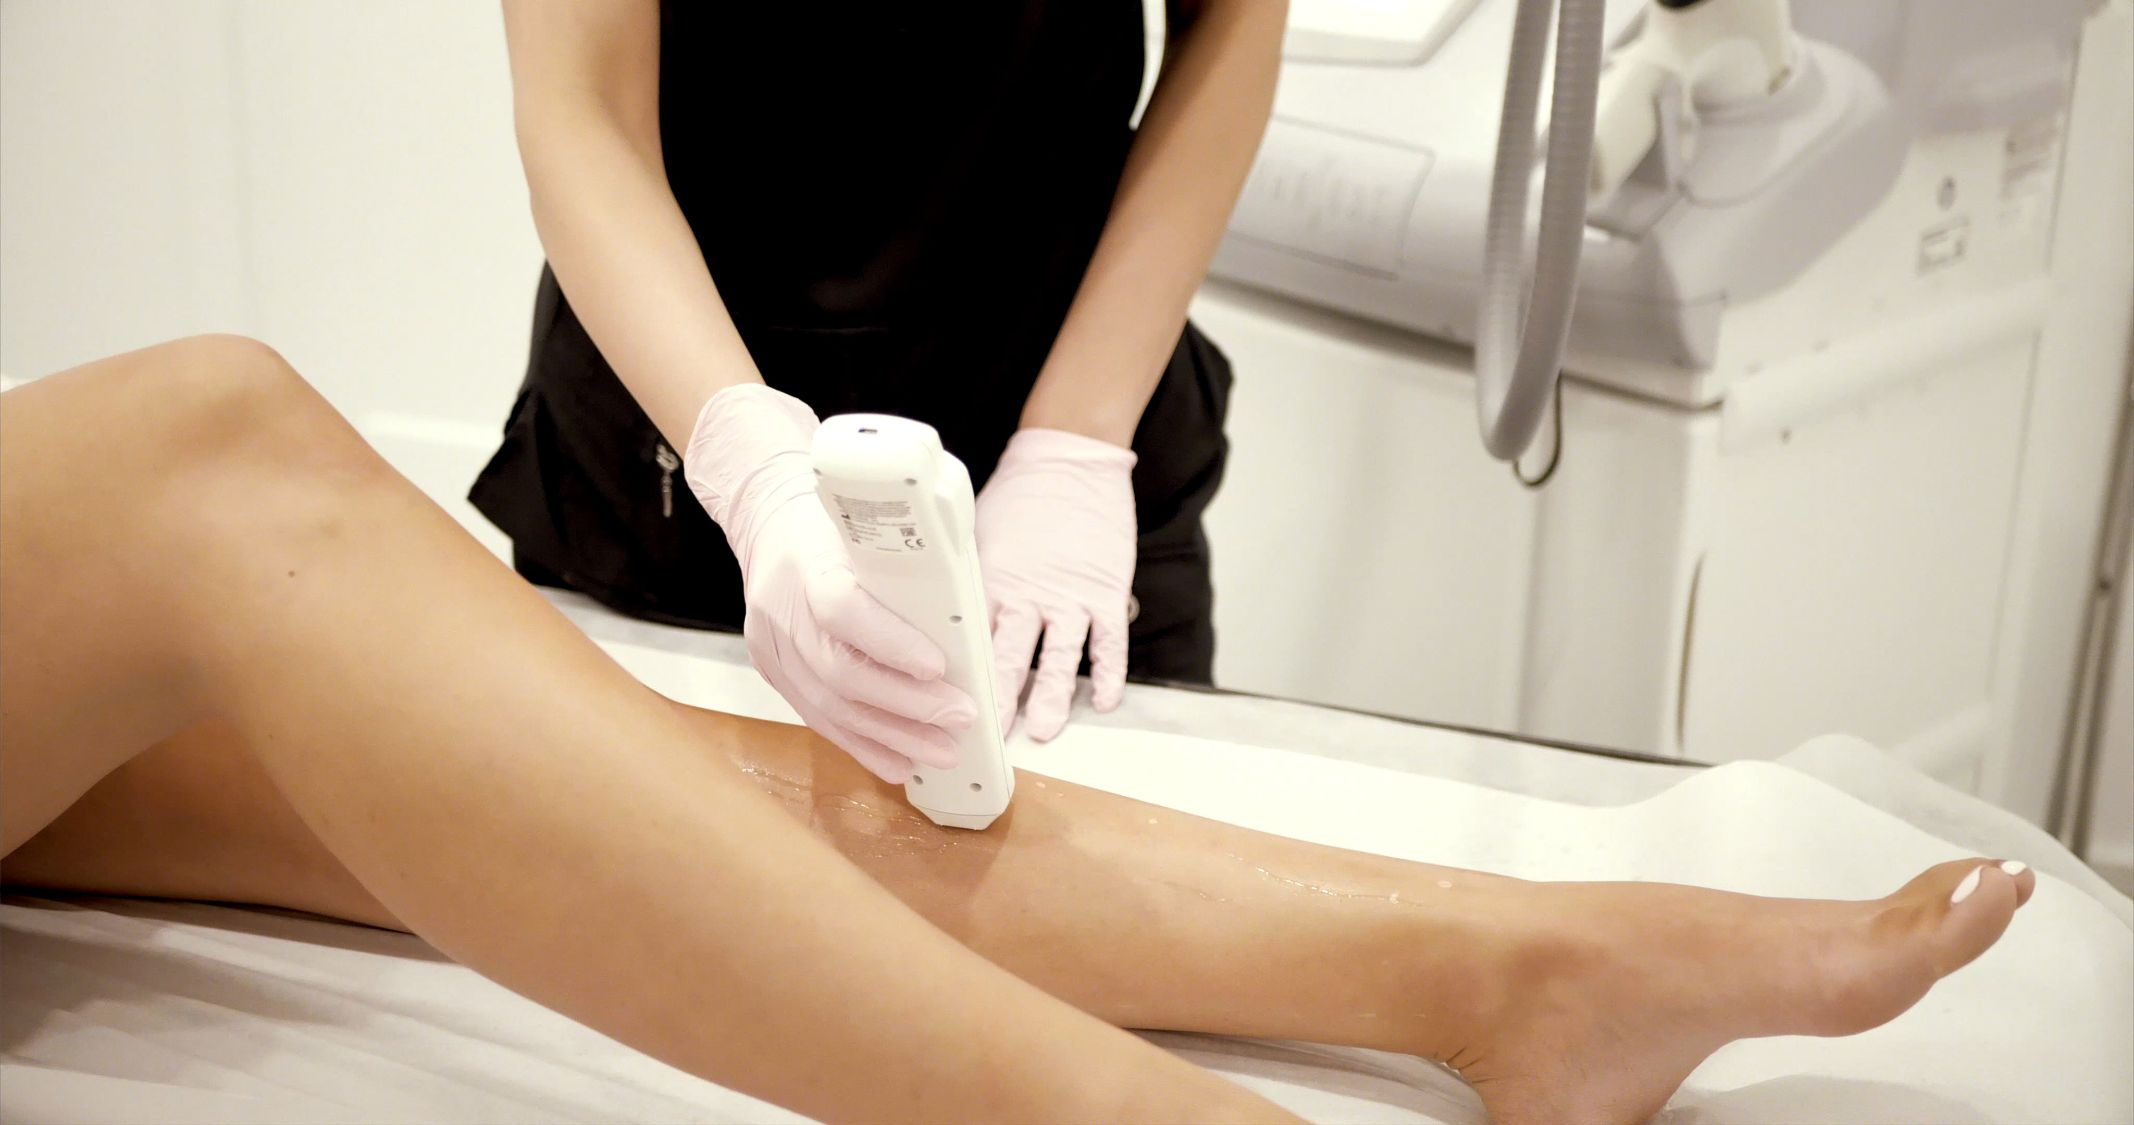 skintel melanin reader before laser hair removal treatment to provide safe and accurate results